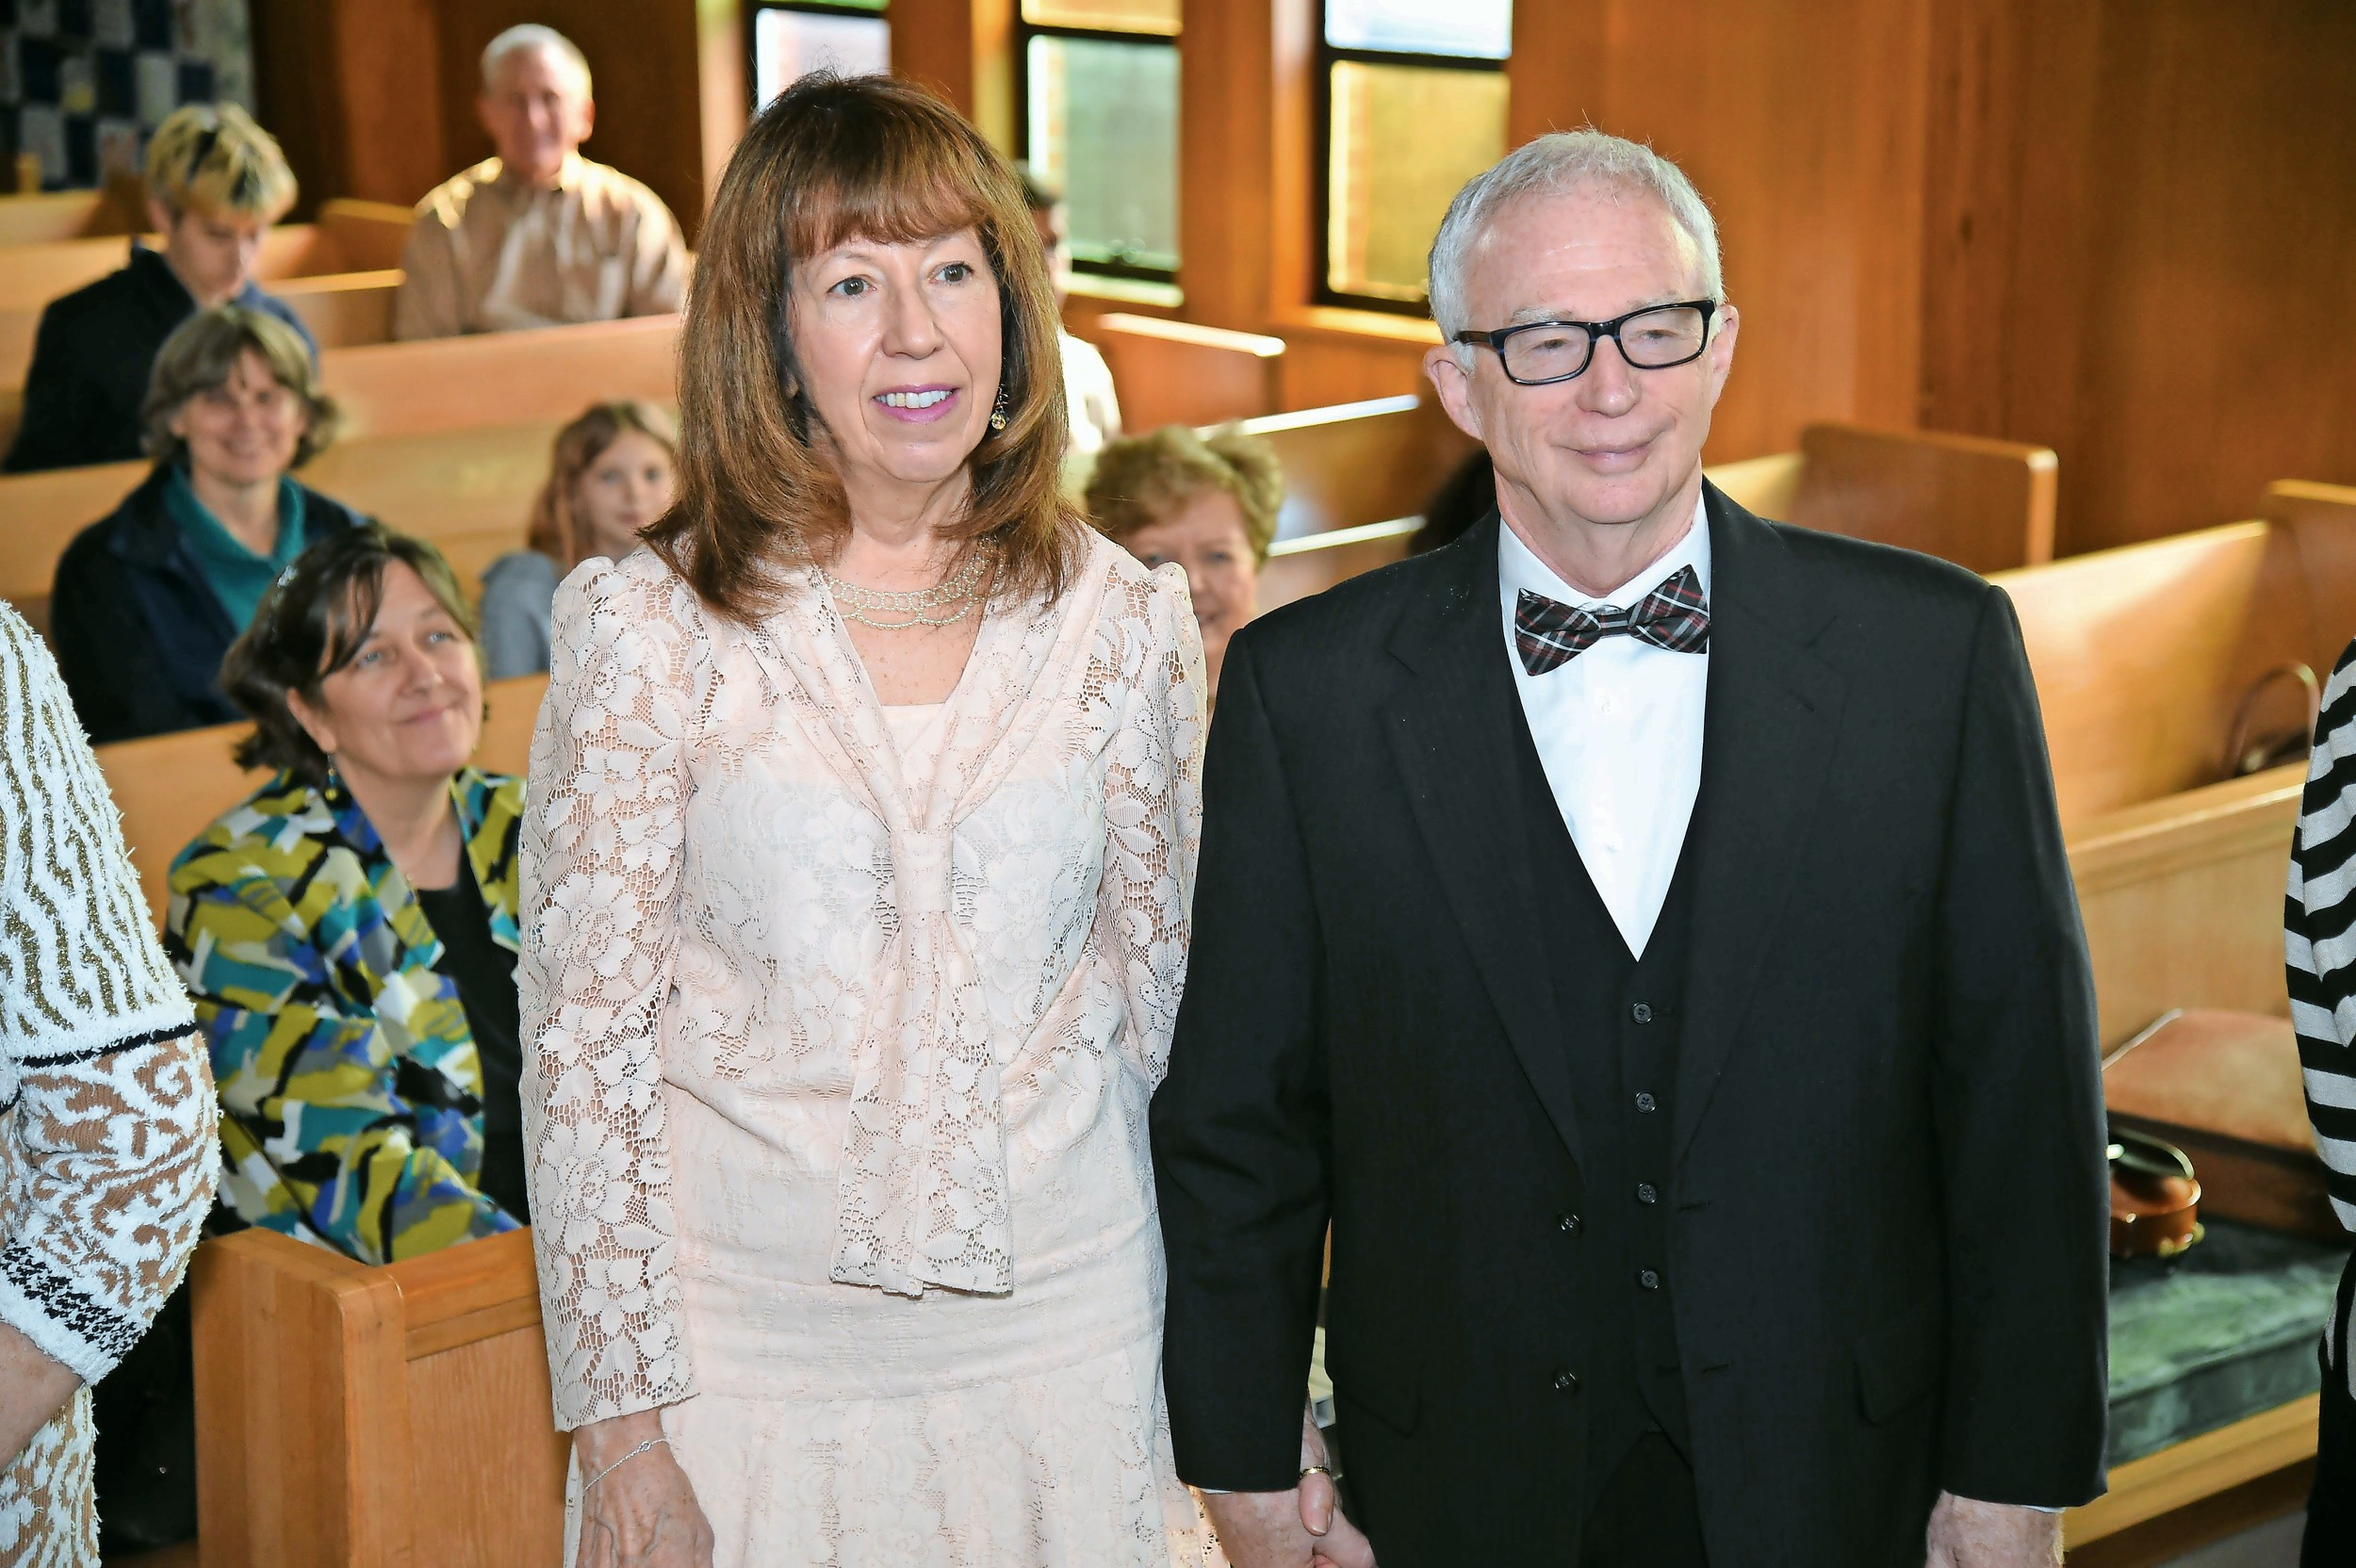 Peter and Beverly Perlow, who have been married for 48 years, said that they were excited to renew their vows.